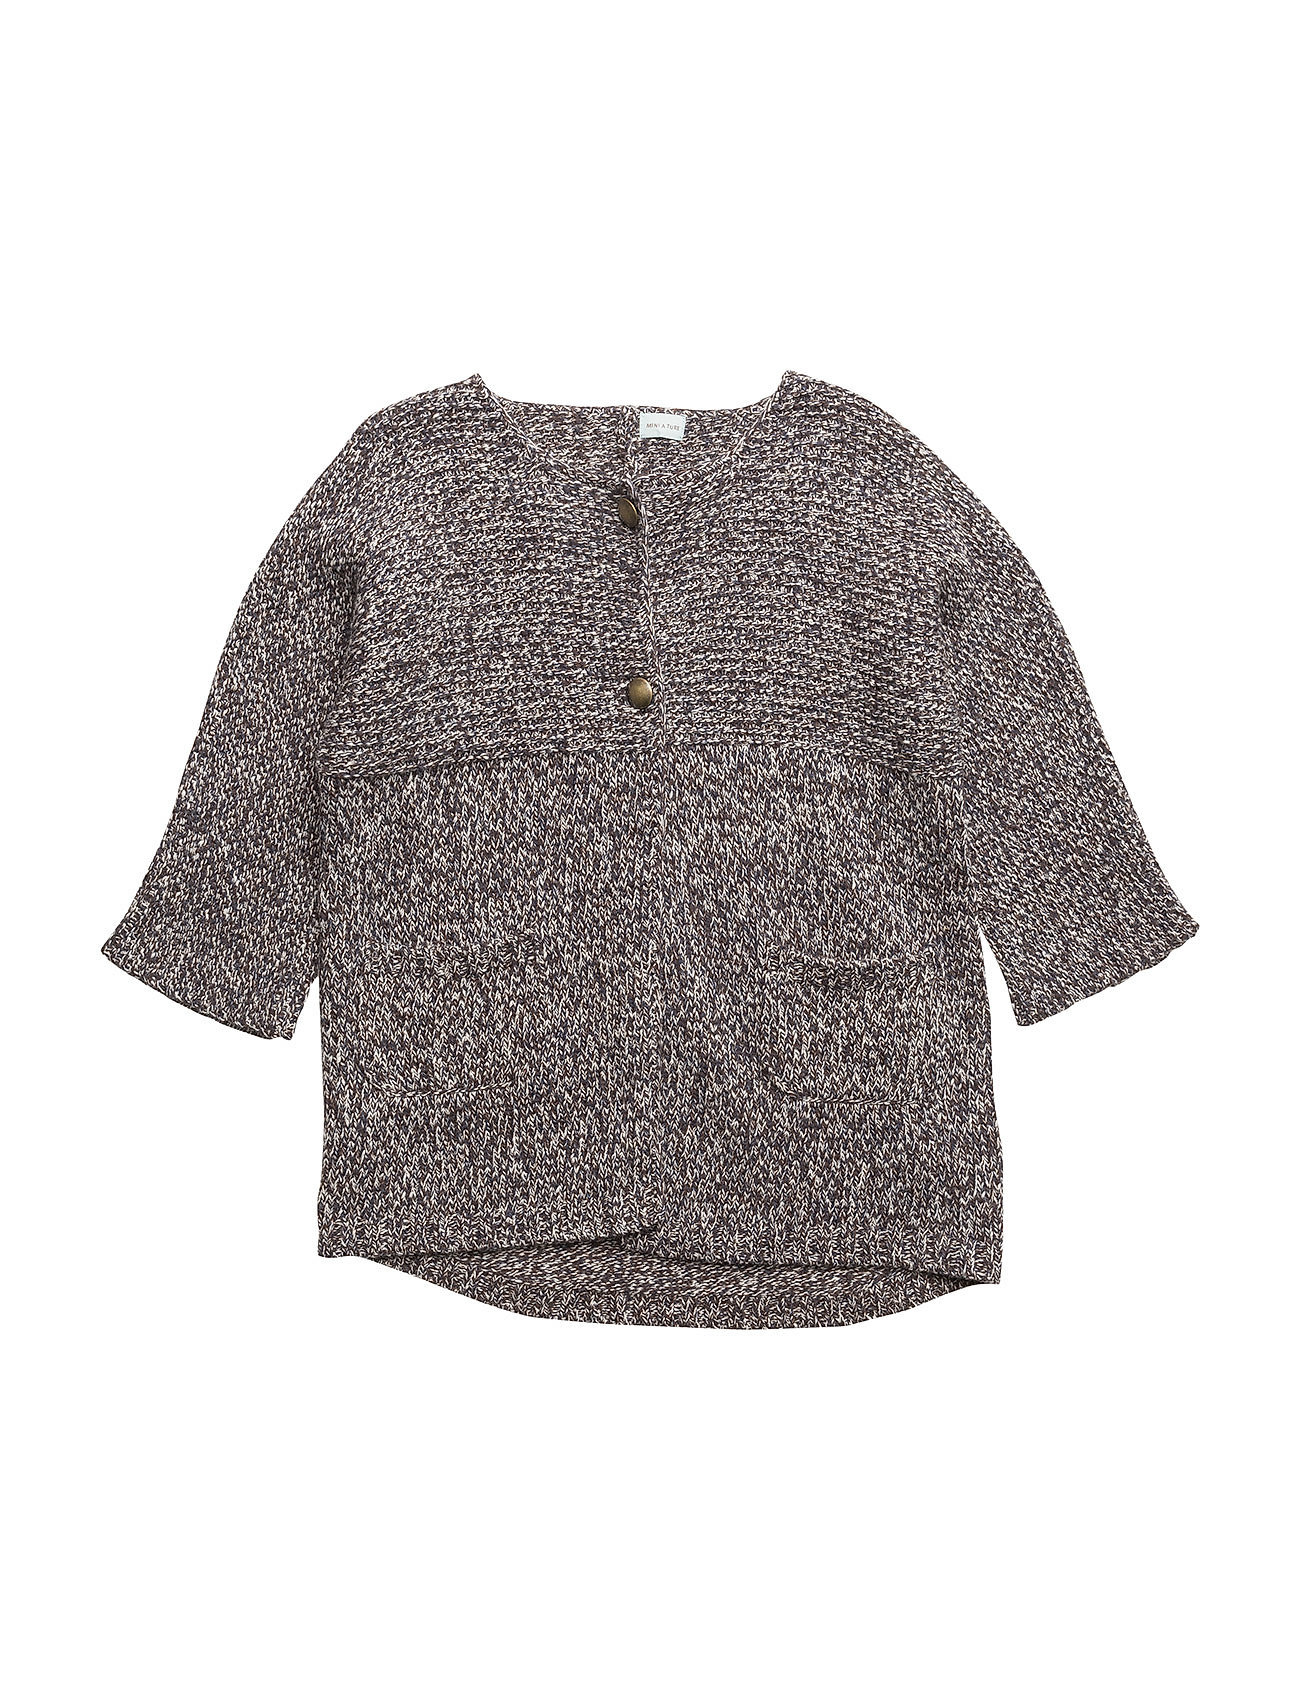 Mini A Ture Ditte, K Cardigan - NIGHTSHADOW BLUE